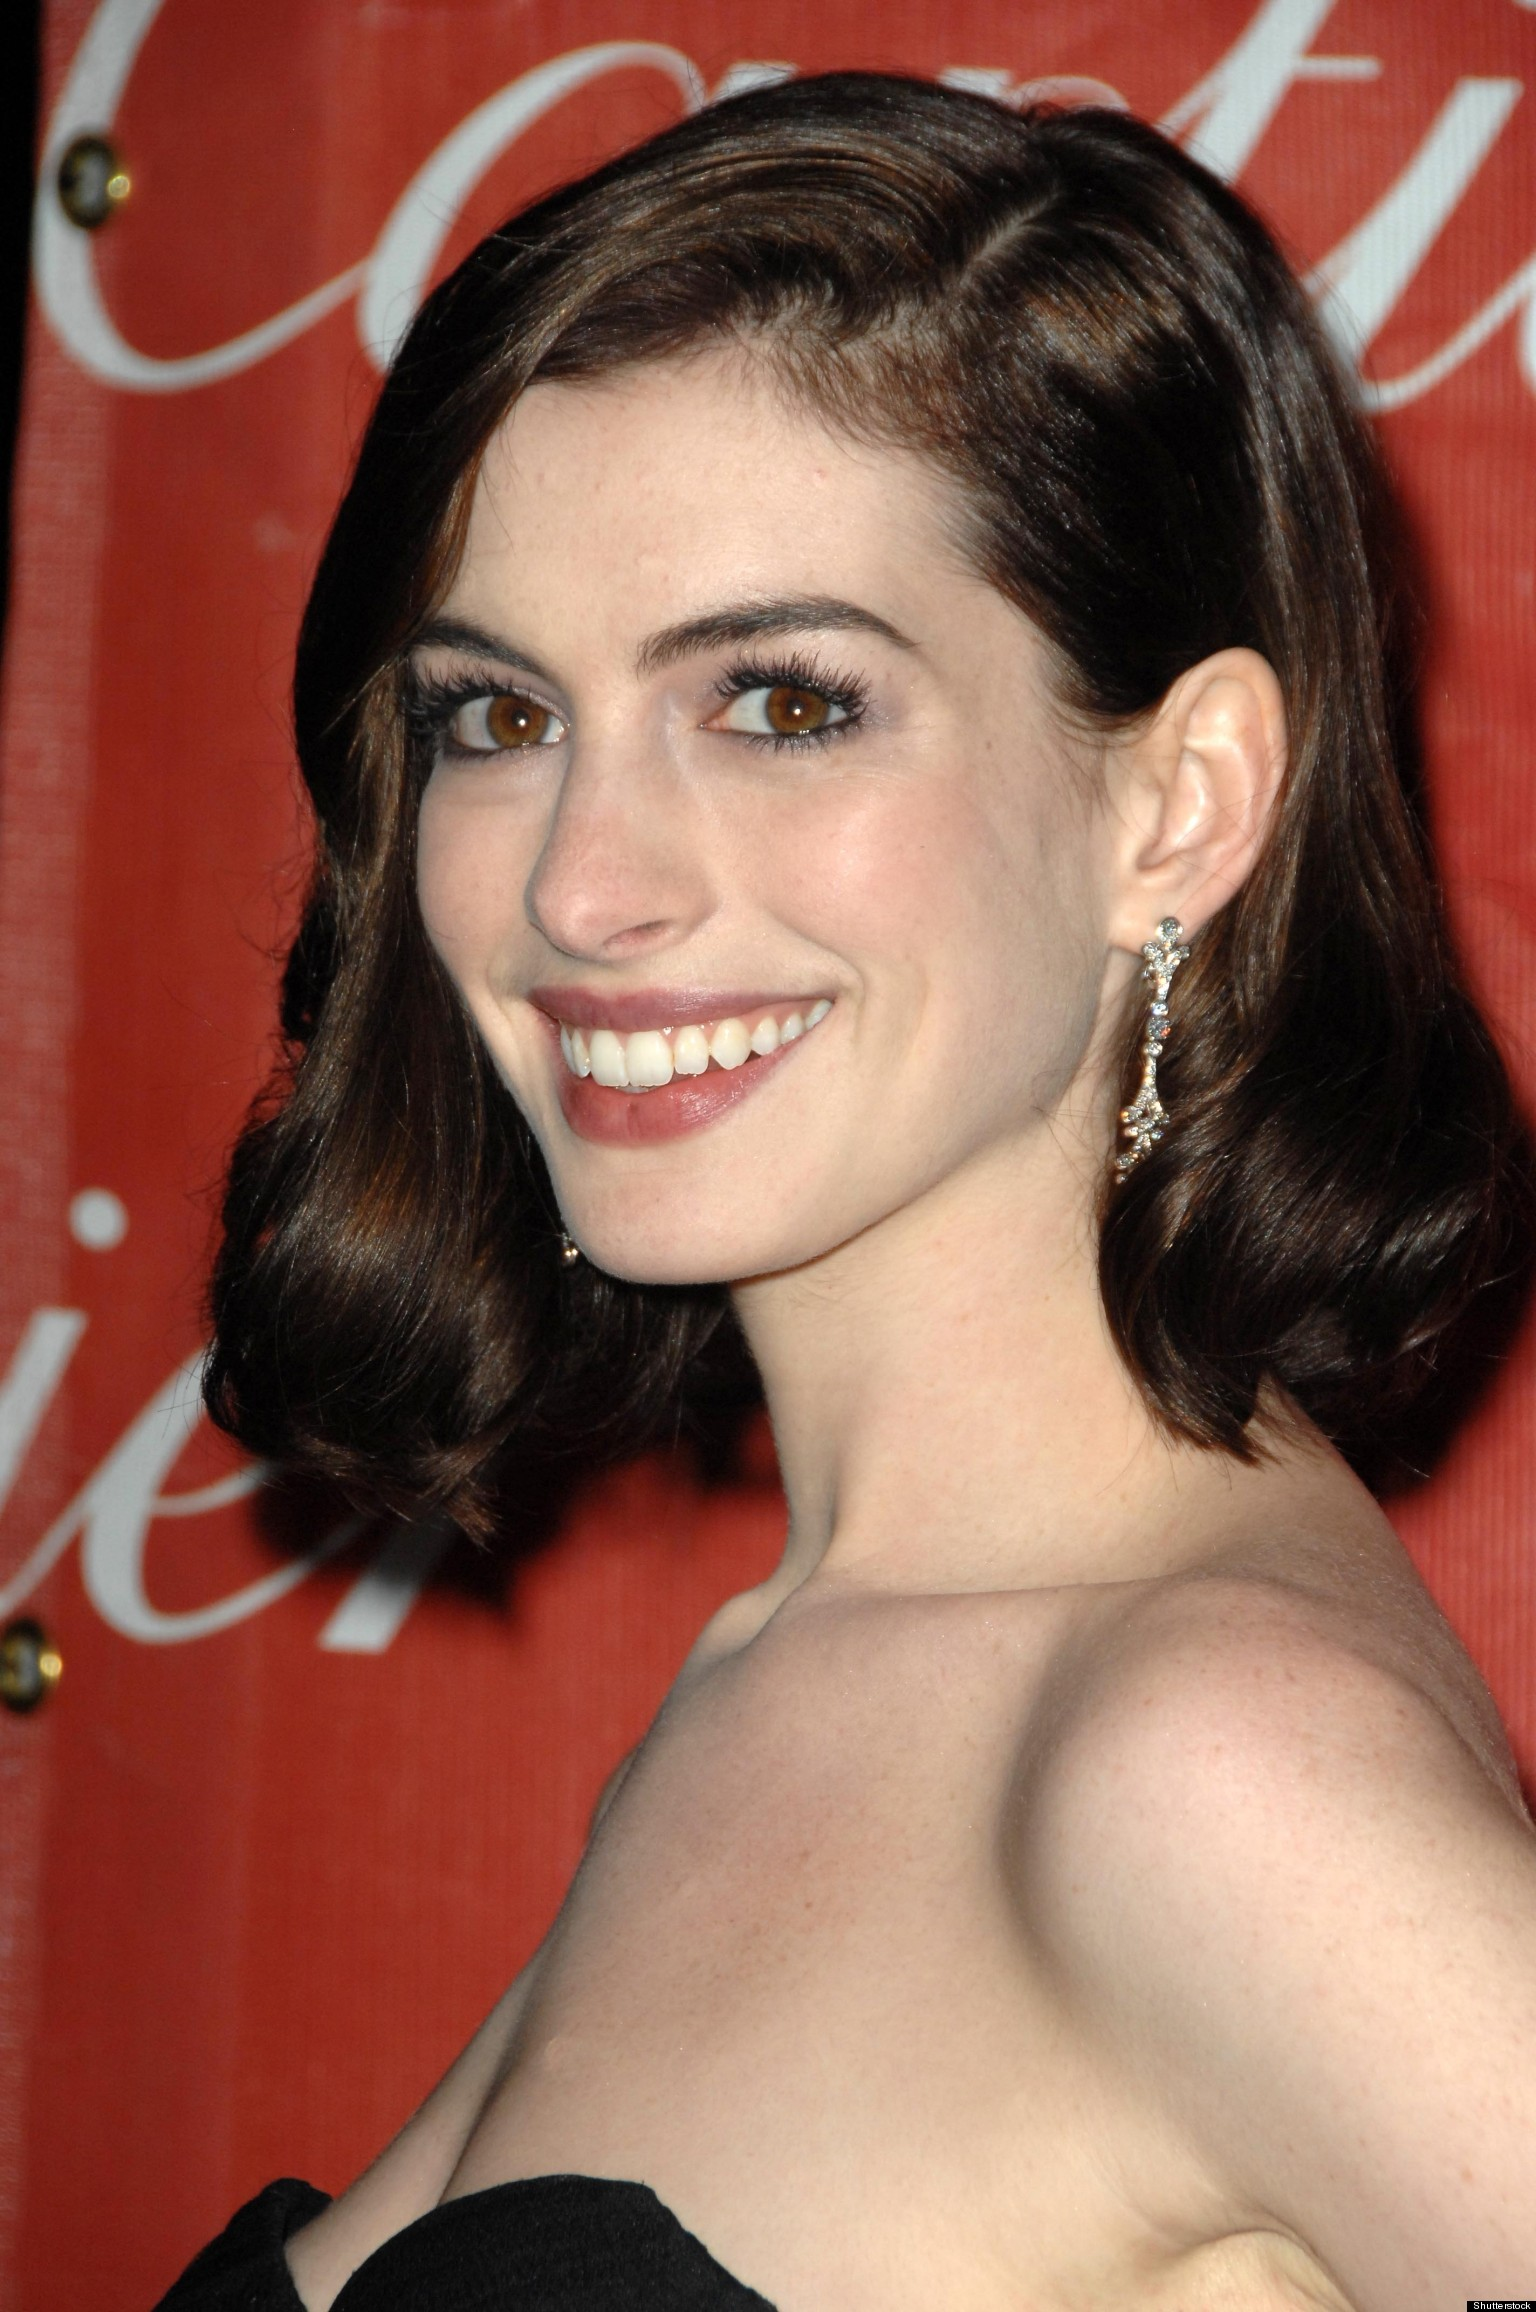 Anne Hathaway's Bridal Bandana Explained | HuffPost Anne Hathaway Facebook